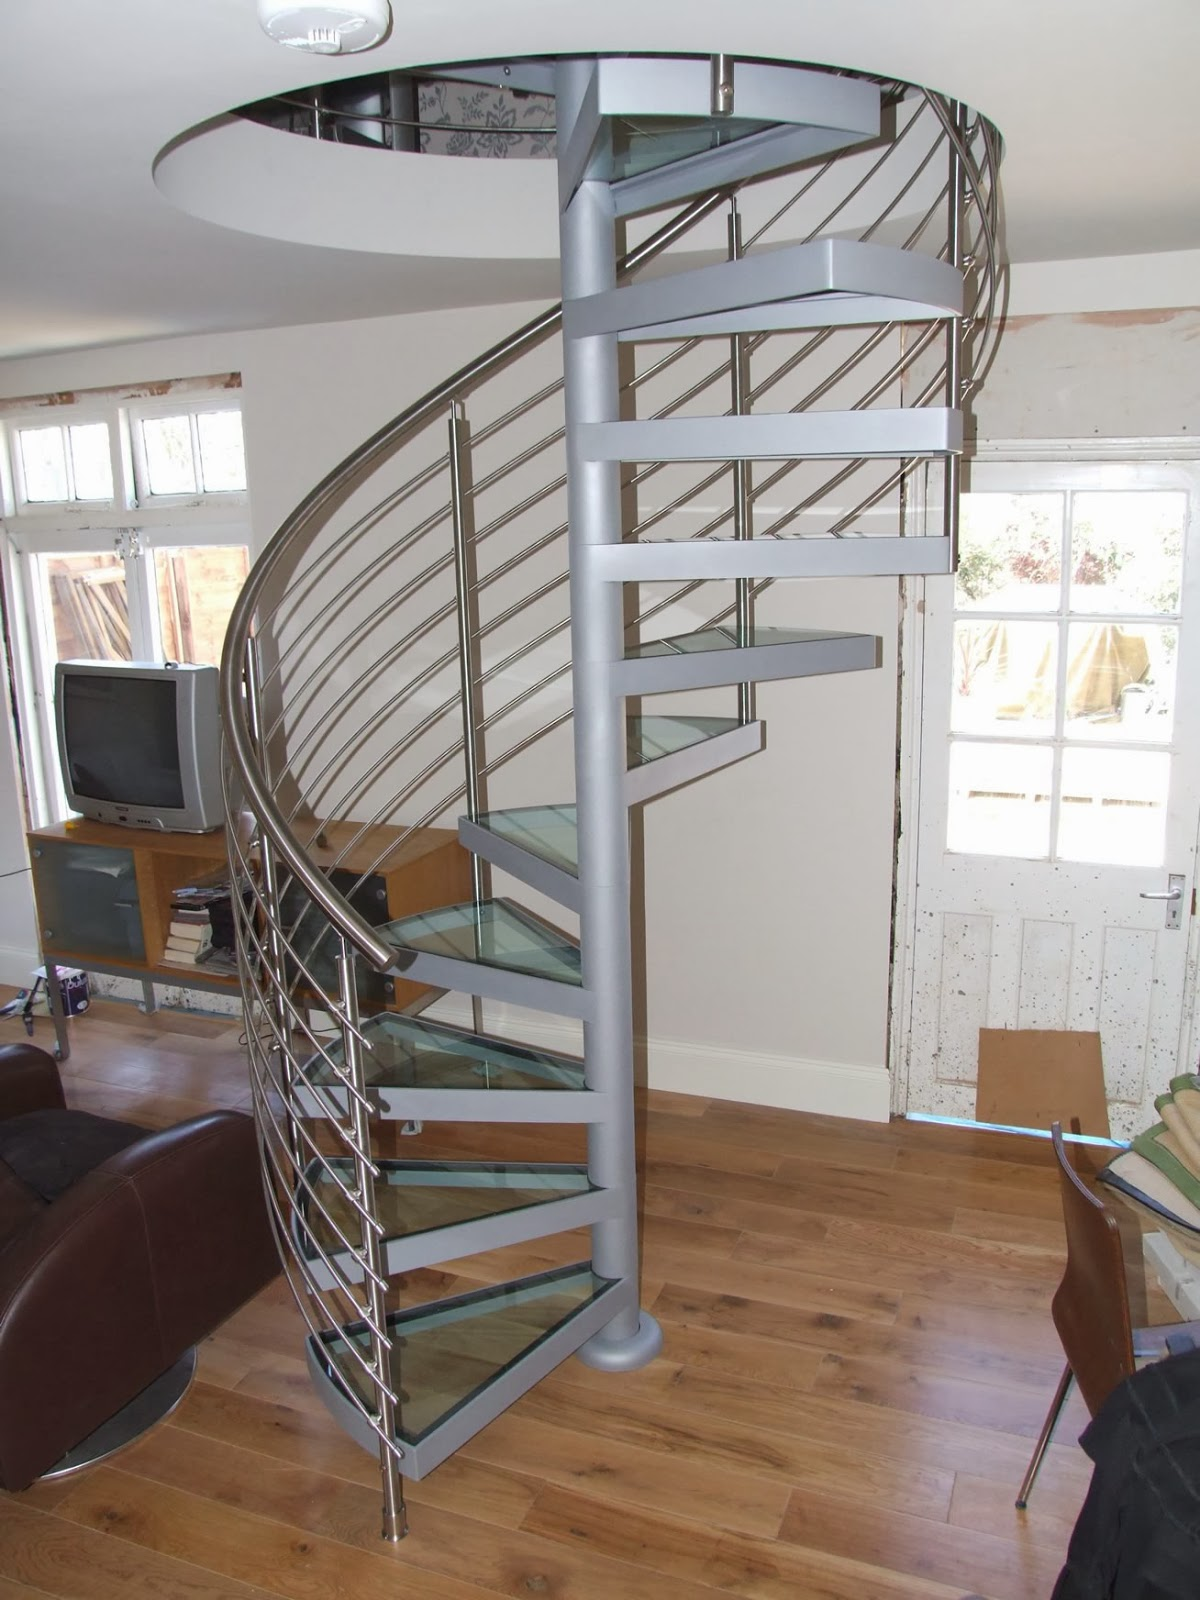 Foundation Dezin & Decor...: Spiral Beauty of Stairs.